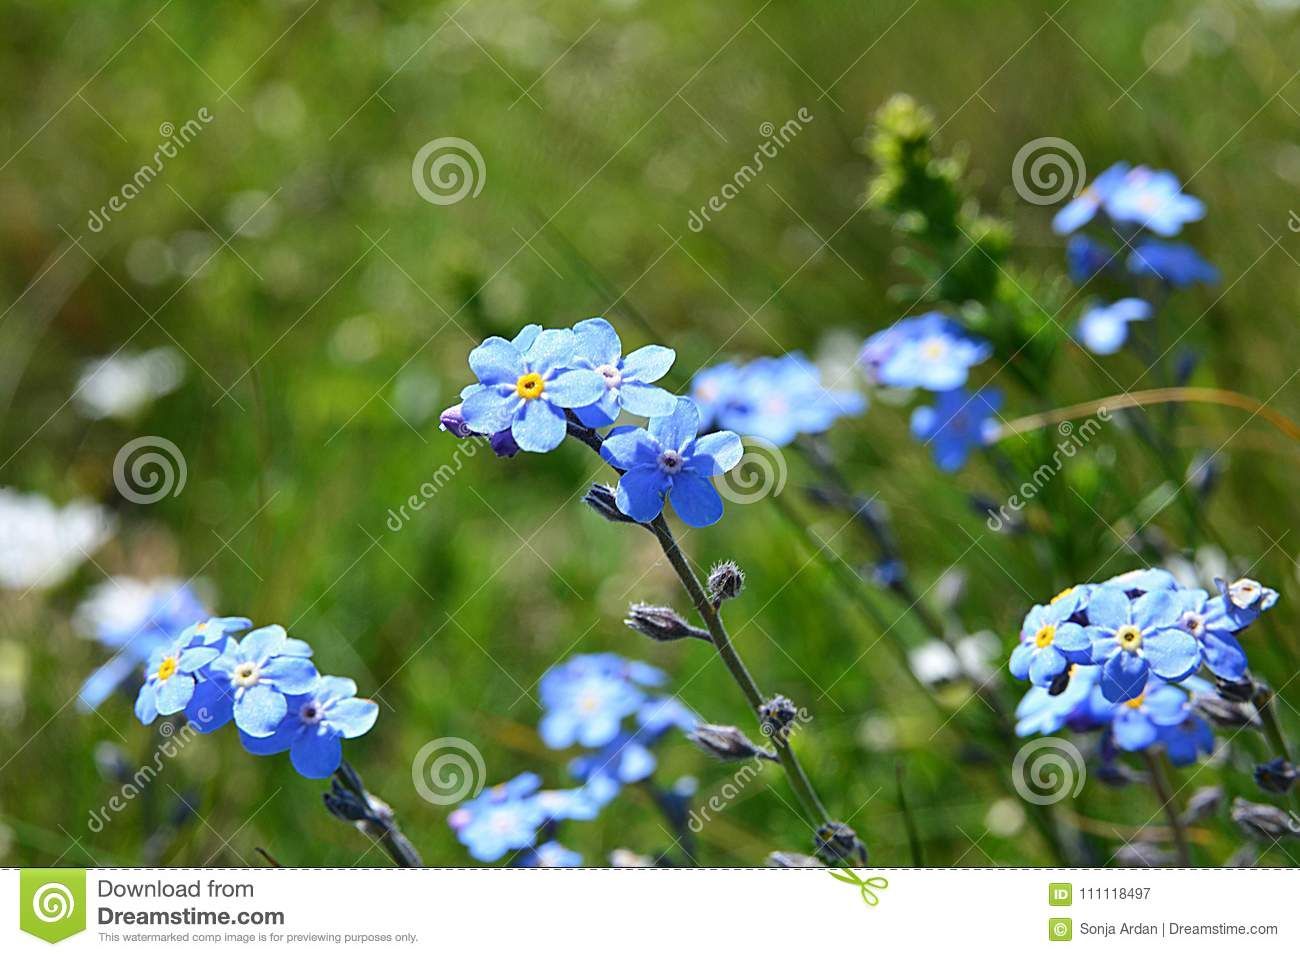 small blue flowers swaying